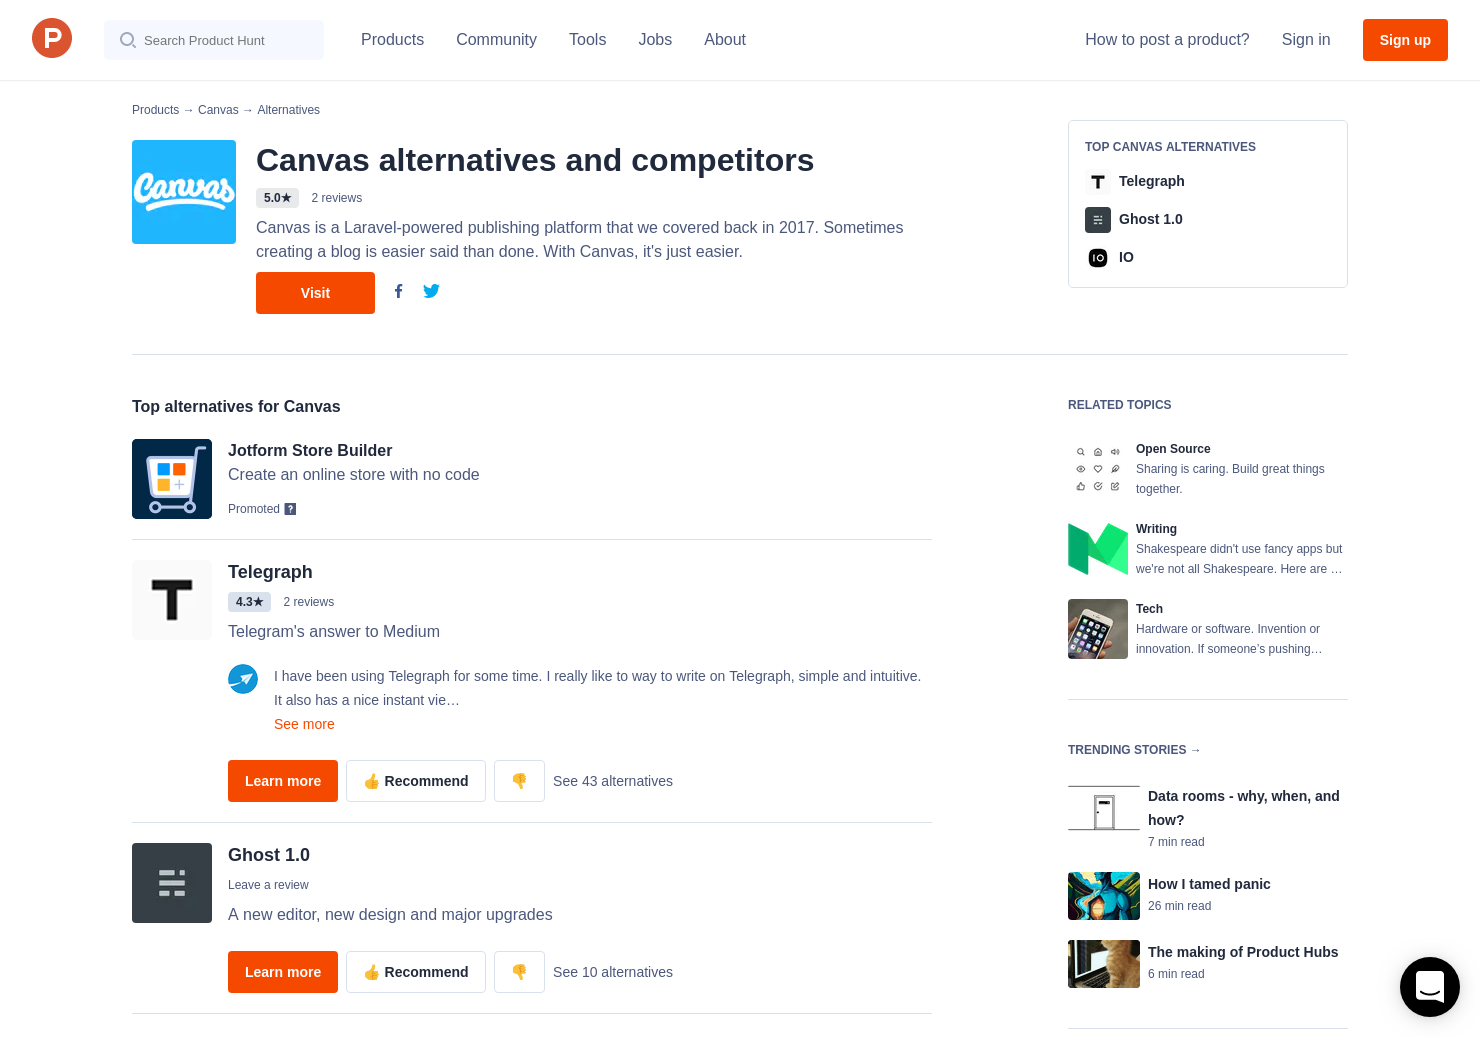 11 Alternatives to Canvas | Product Hunt